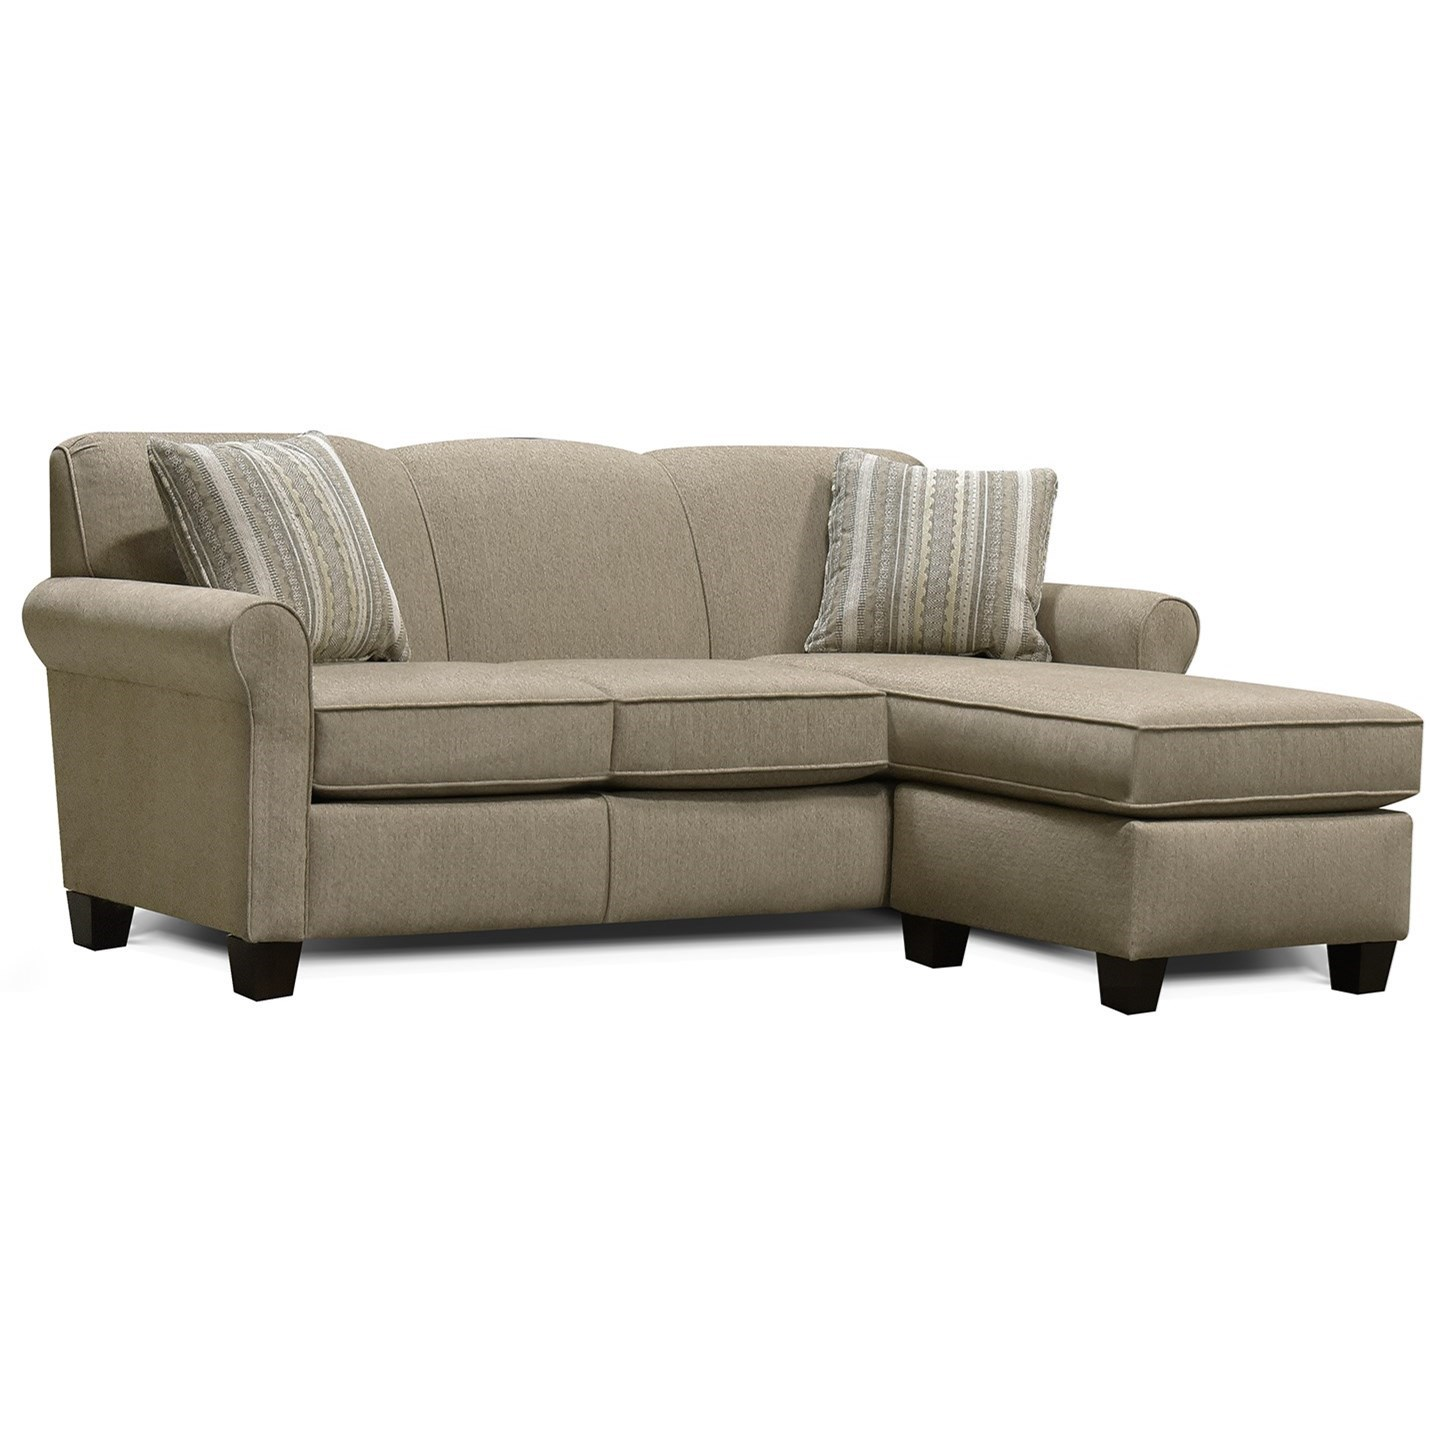 Angie  Sectional Sofa with Floating Ottoman by England at Virginia Furniture Market